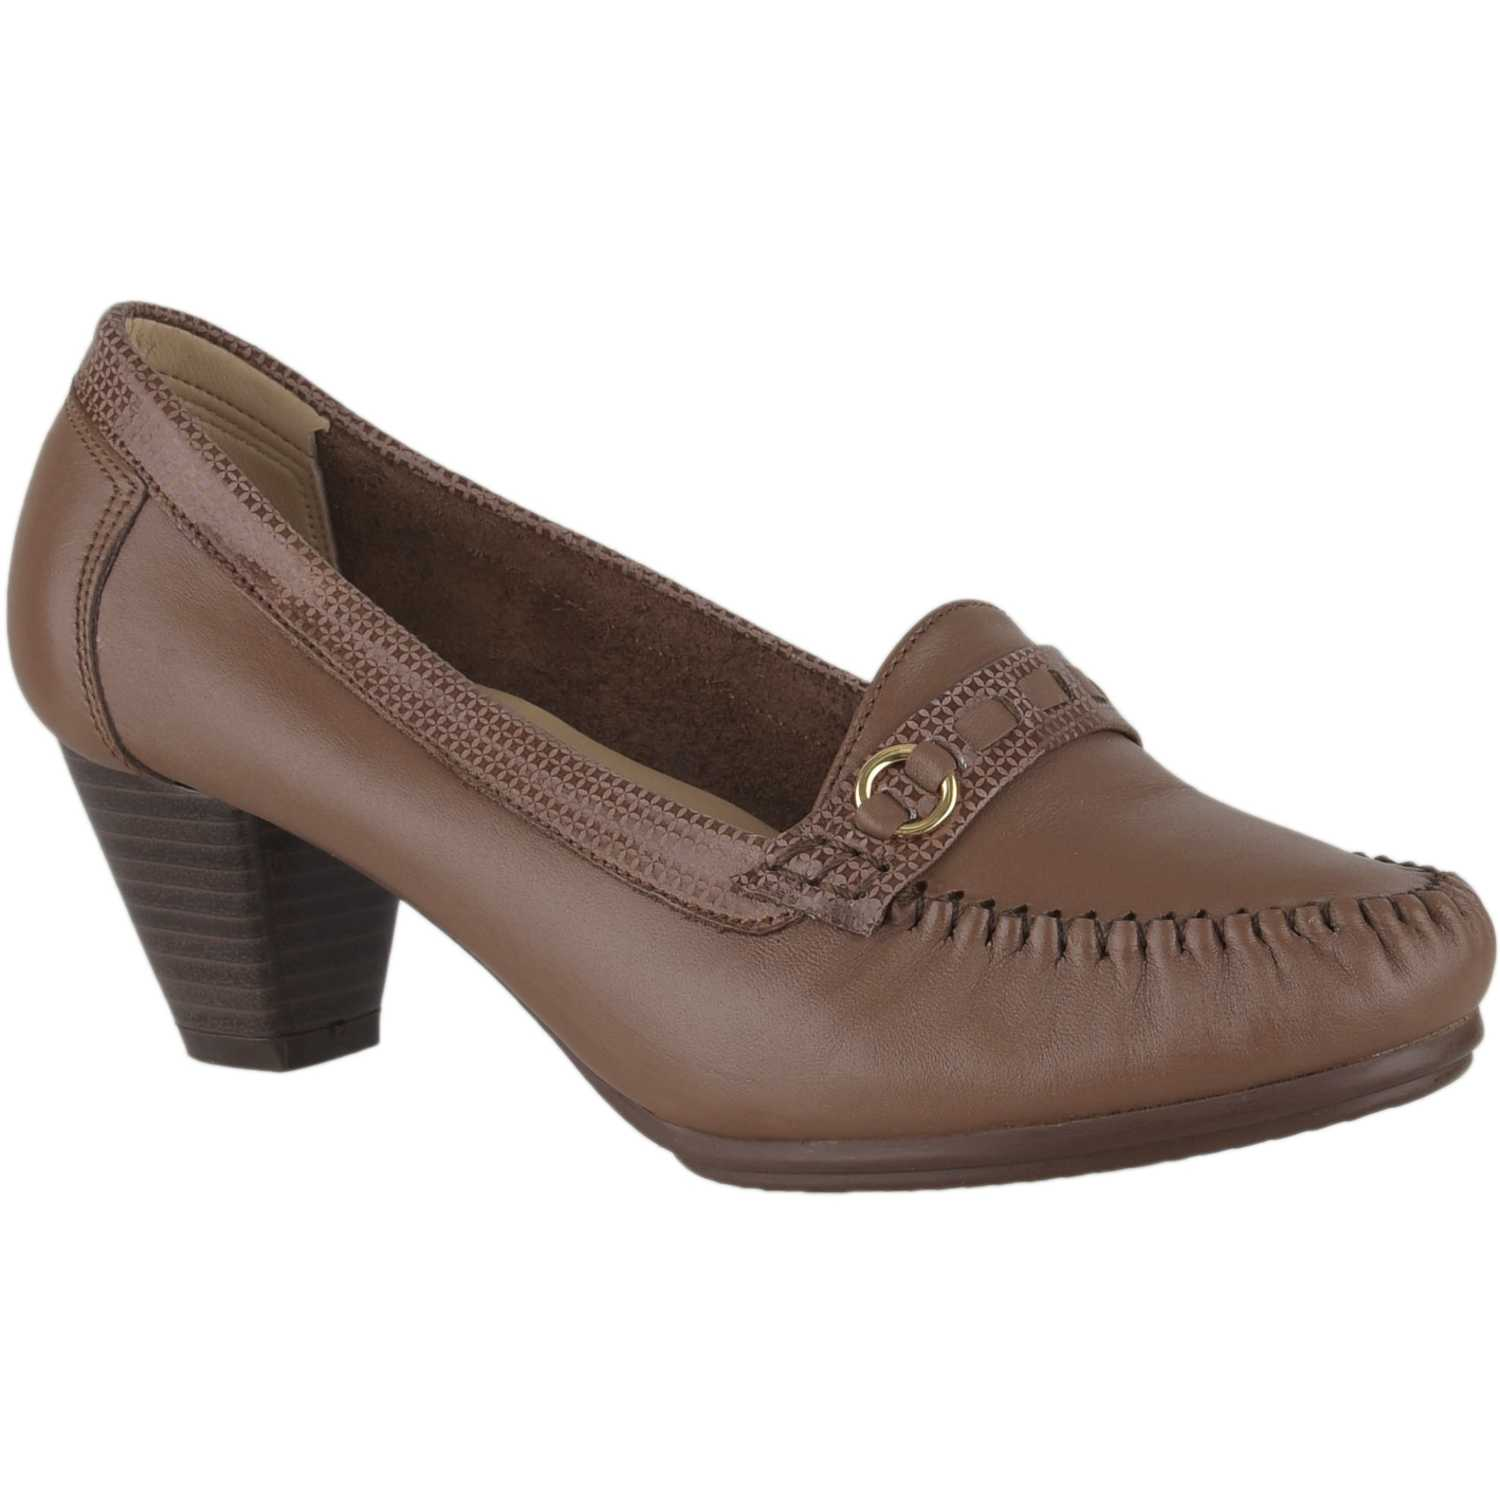 Limoni - Cuero cv regi04 Toffee Estiletos y Pumps